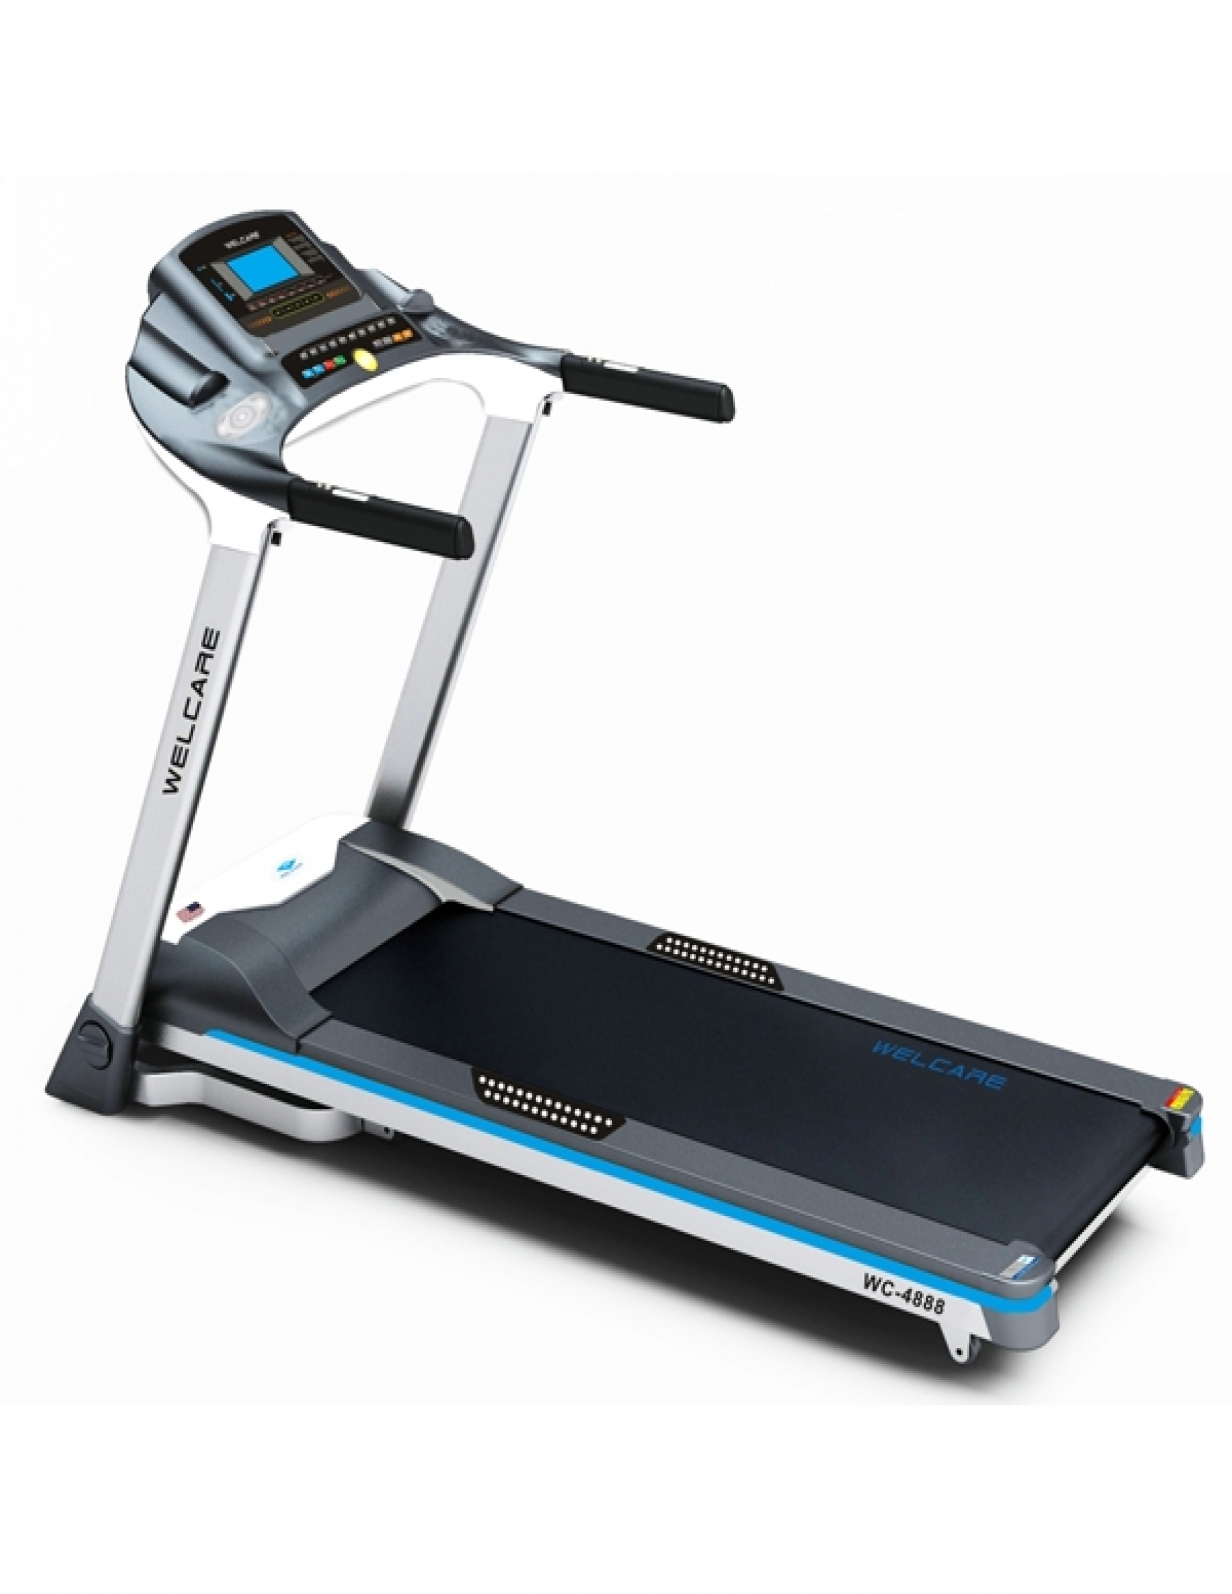 WC 4888 MOTORIZED TREADMILL